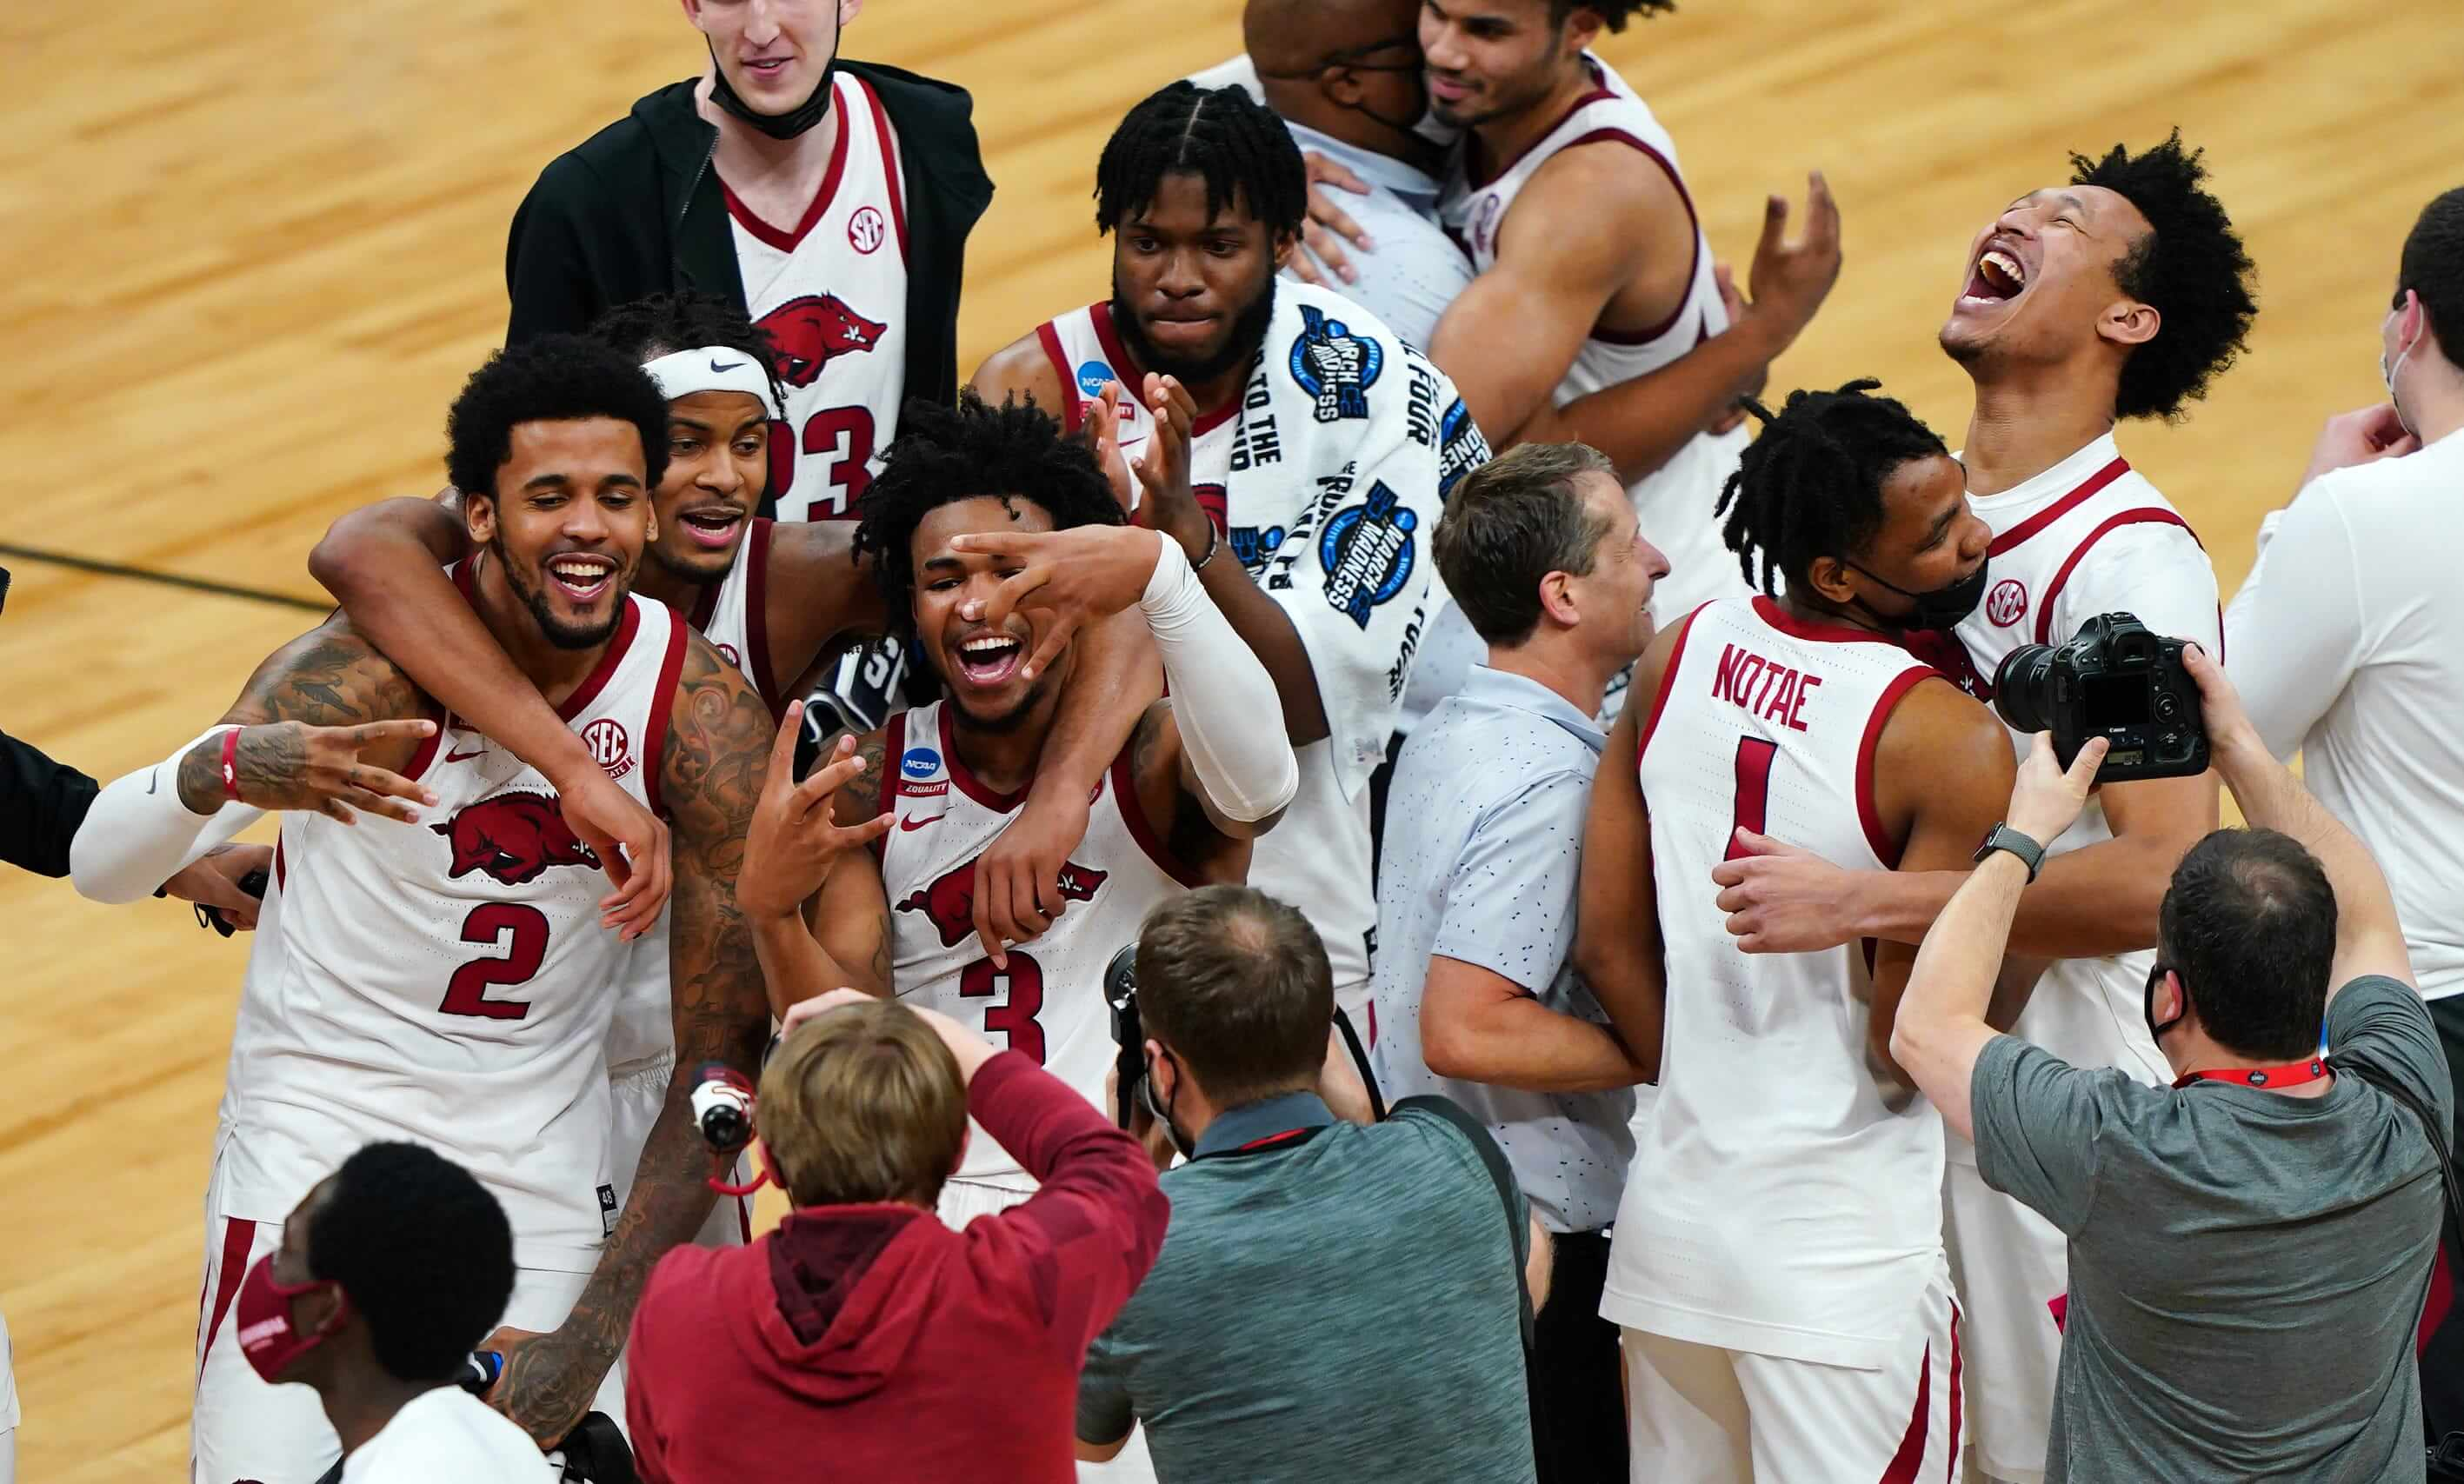 Arkansas Razorbacks celebrates for photographers after the Sweet Sixteen round of the 2021 NCAA Tournament on Saturday, March 27, 2021, at Bankers Life Fieldhouse in Indianapolis, Ind.